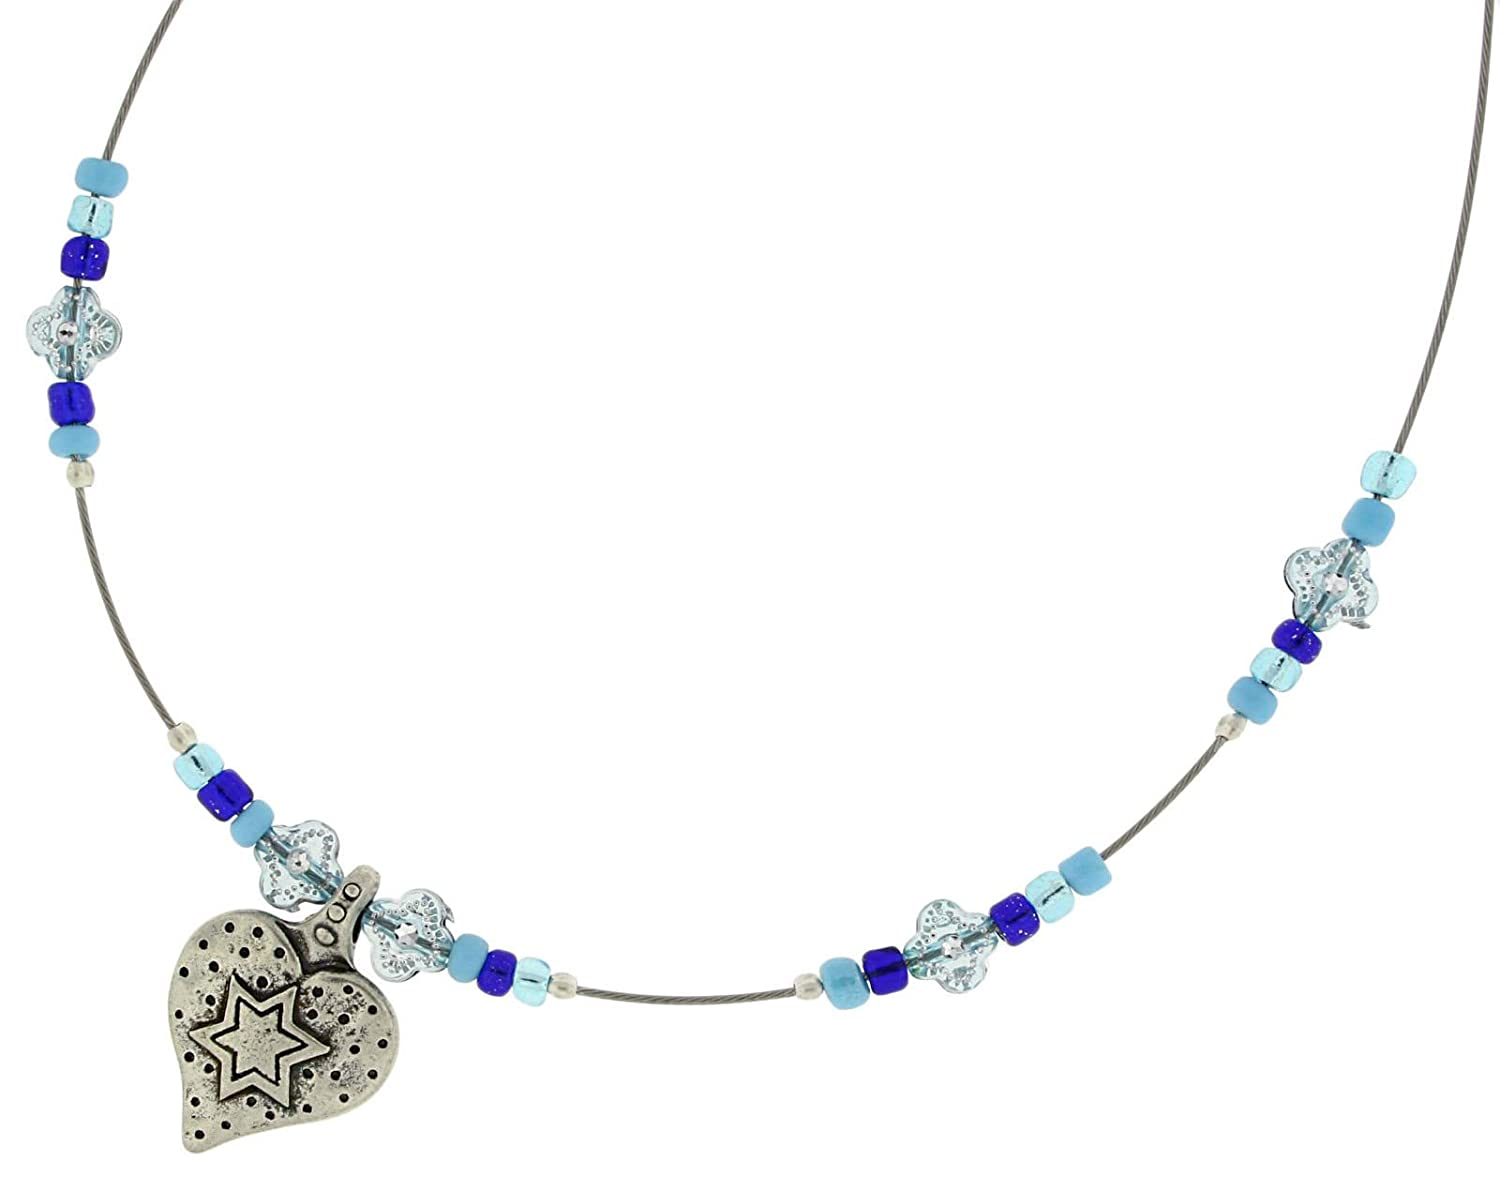 Hand Made By DANON Pewter Star Of David On A Heart Pedant /& Beads 15.5 Long Necklace Jewelry